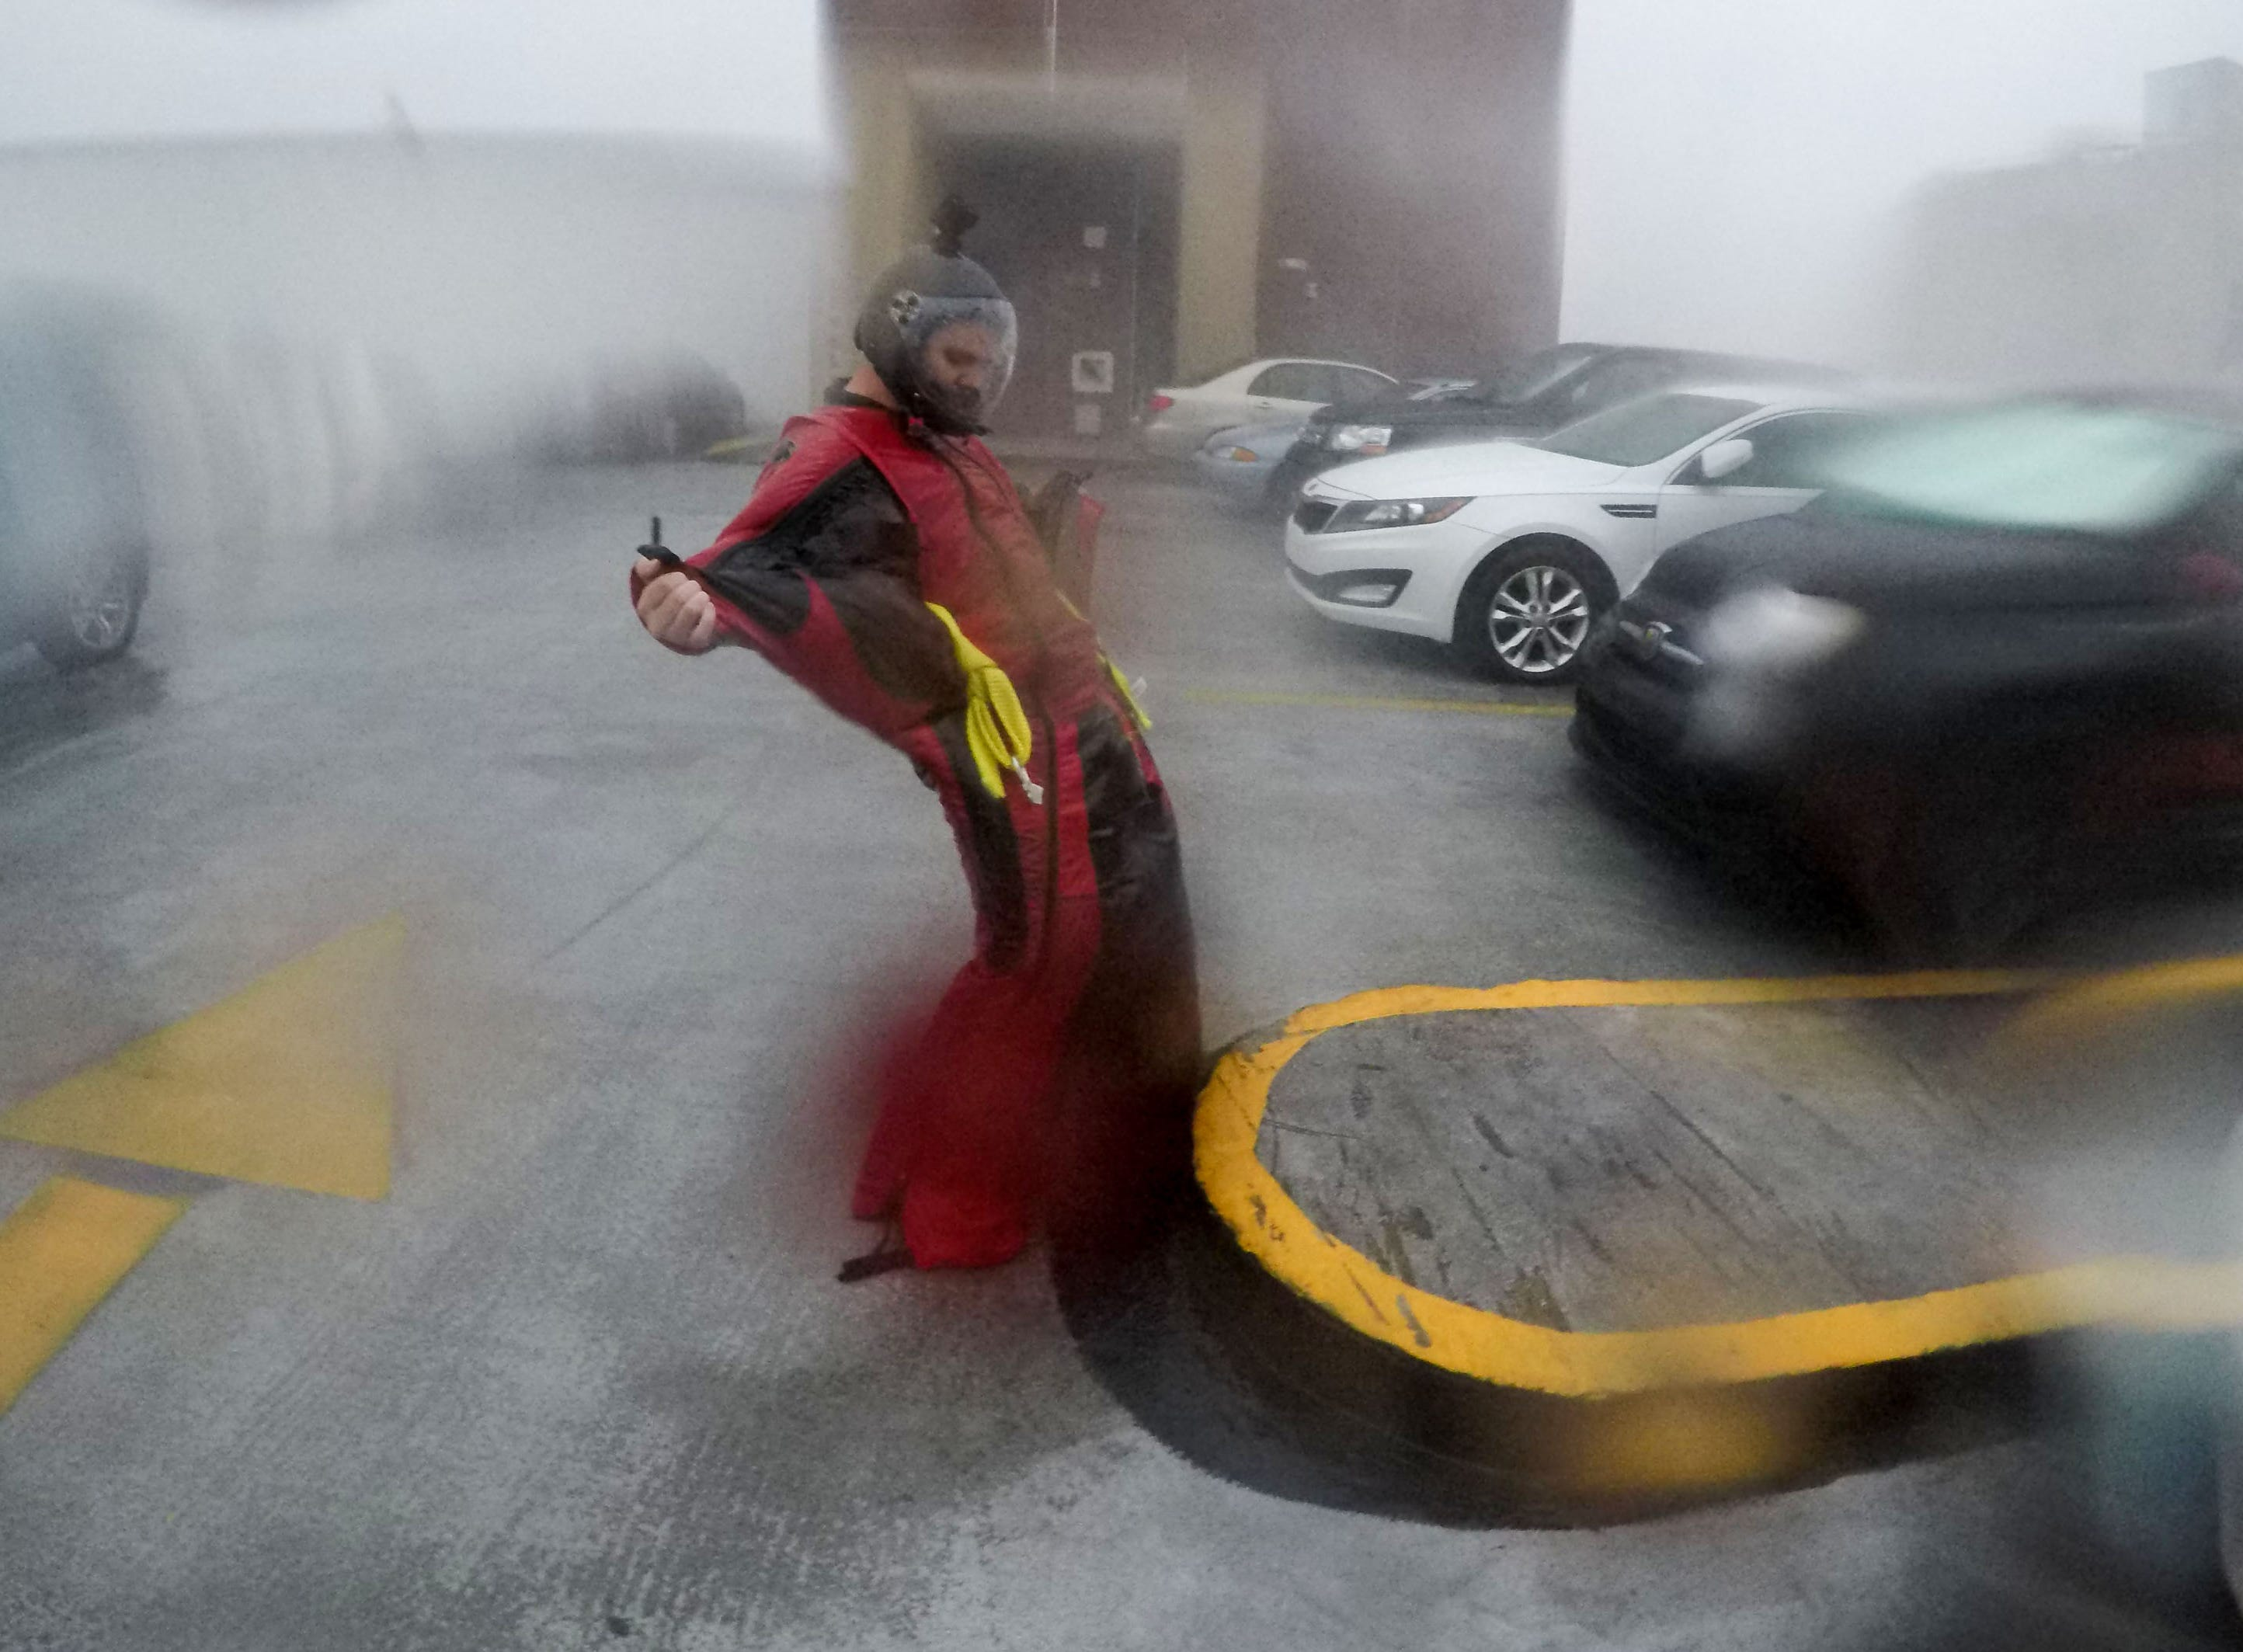 Michael Henderson of Tennessee, a professional skydiver, stands on the seventh floor of a parking garage in downtown Wilmington, North Carolina, as Hurricane Florence just hit land on Friday, September 14, 2018. Henderson was testing out his wing suit in hurricane conditions.  (Ken Ruinard / Greenville News / Gannett USA Today Network / 2018 )